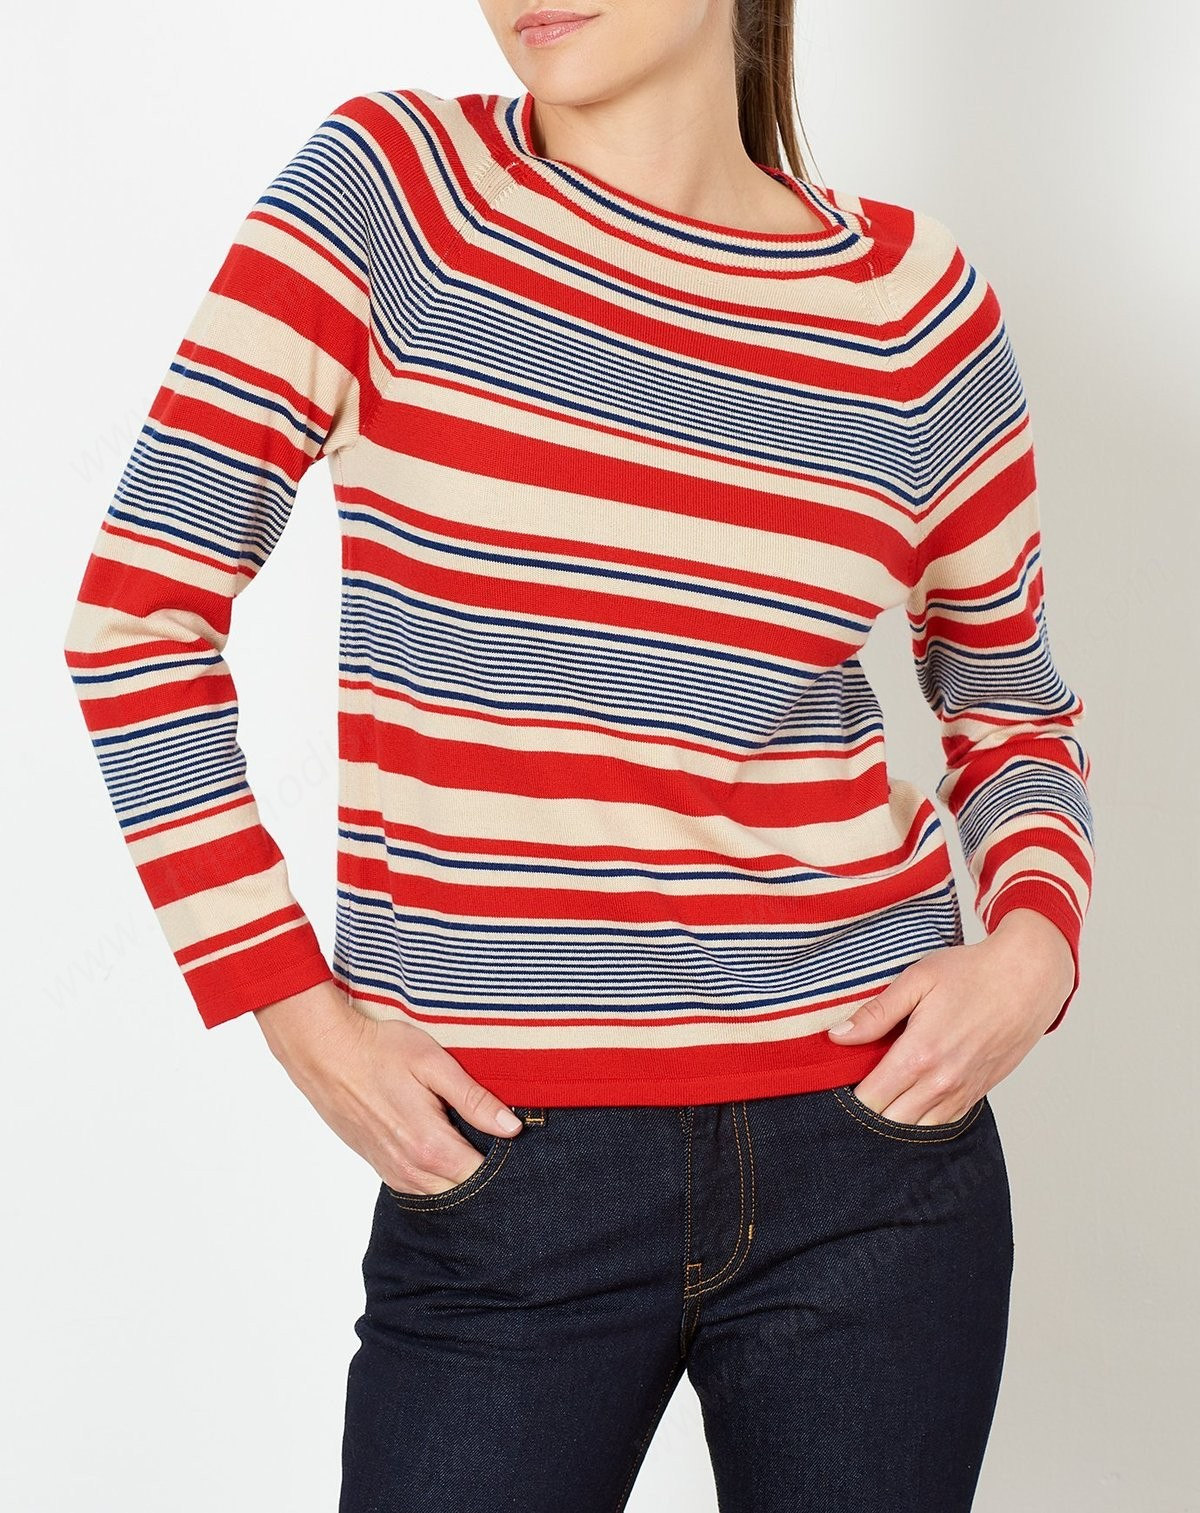 A.p.c. Womens's A.p.c. Mont Blanc Sweater - Red - -1